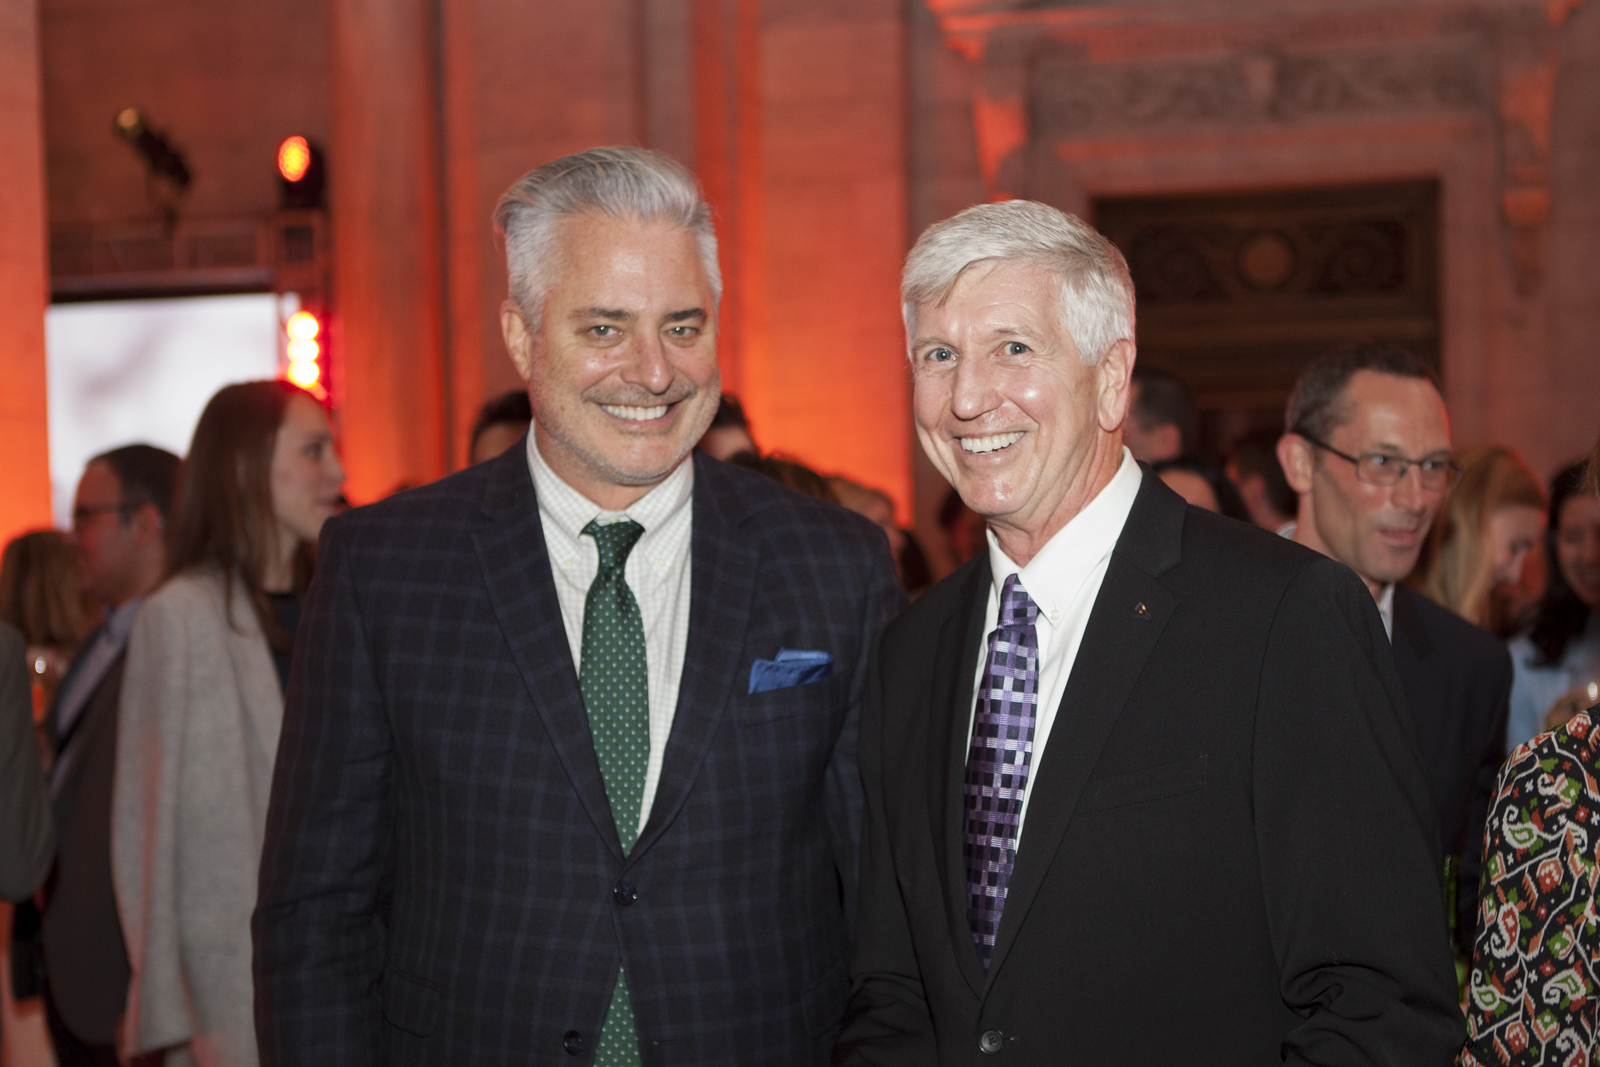 Sean Sullivan of Hearst Design Group with Carl Minchew